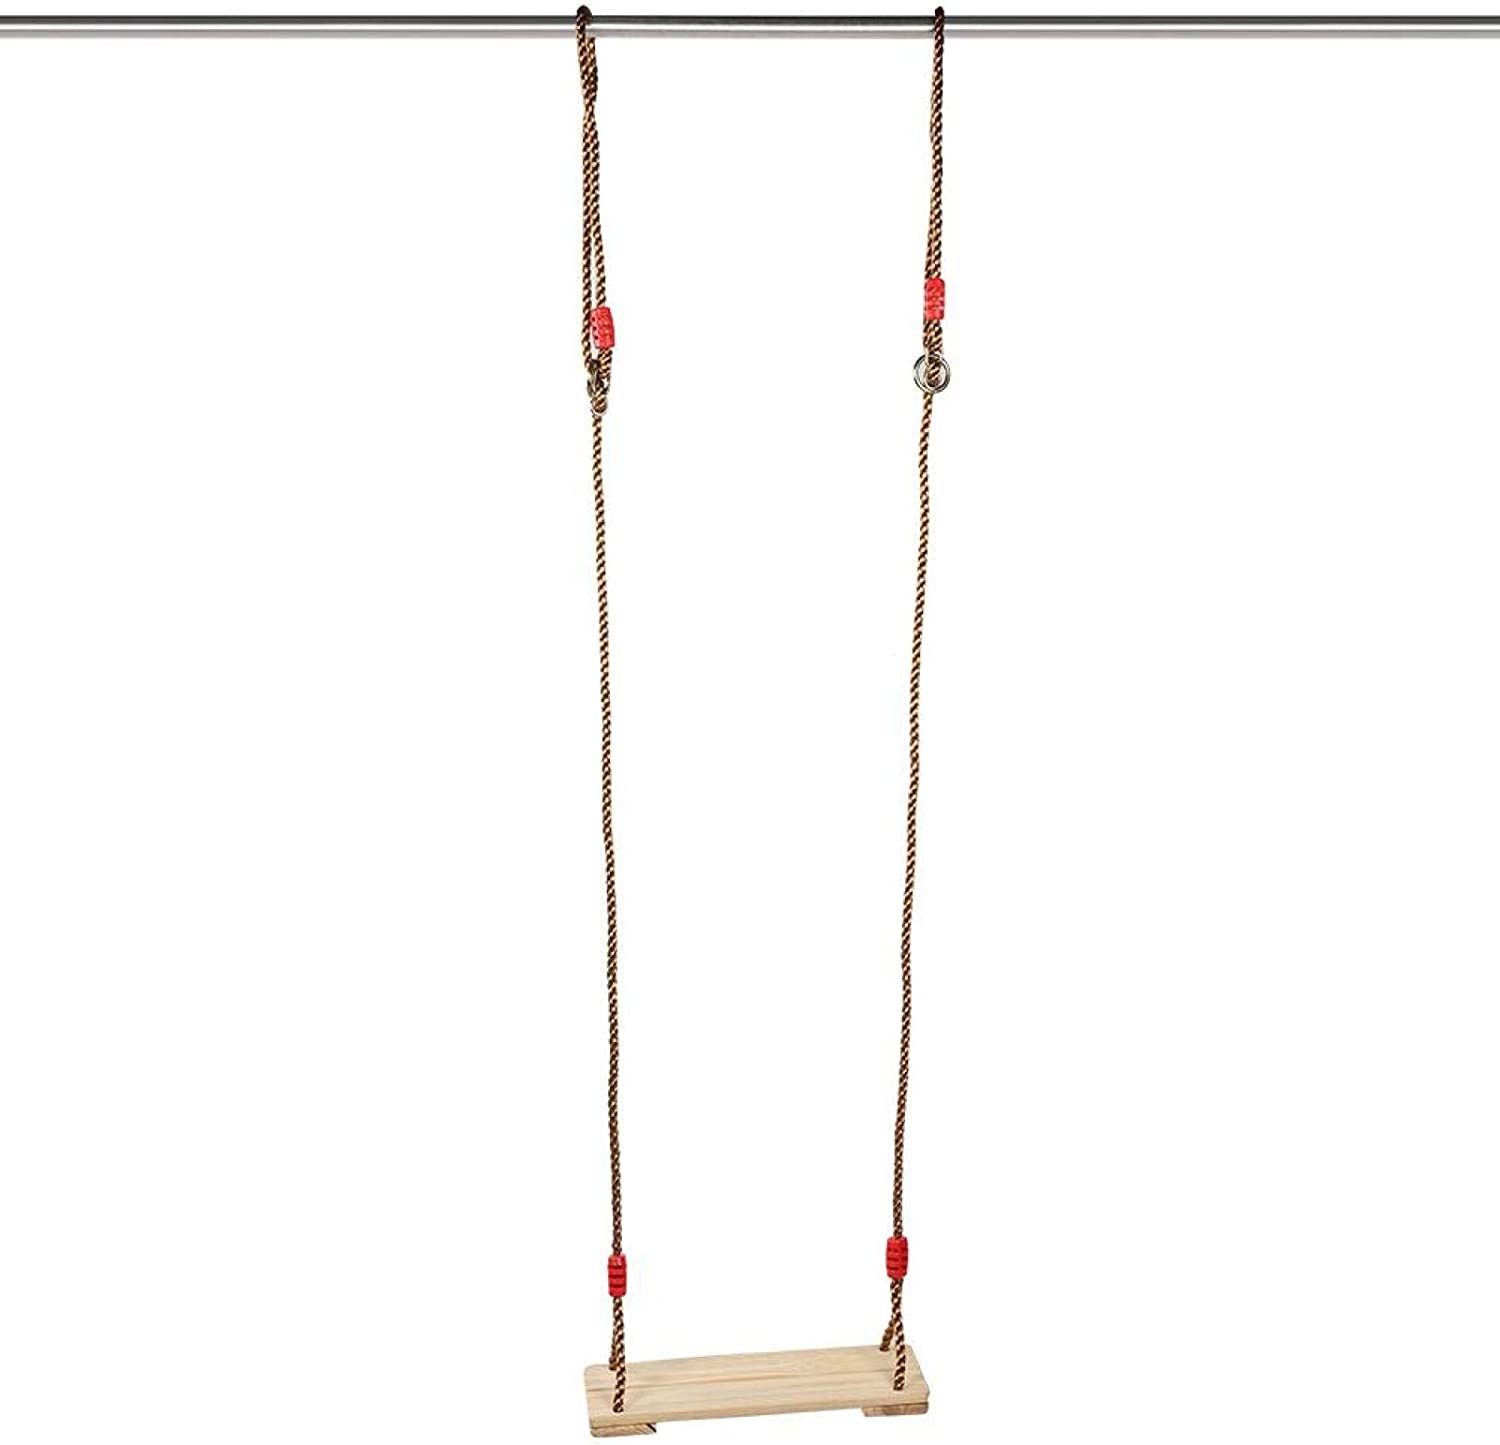 YYOYY Children Hanging Seat Accessory for Indoor Outdoor Small P